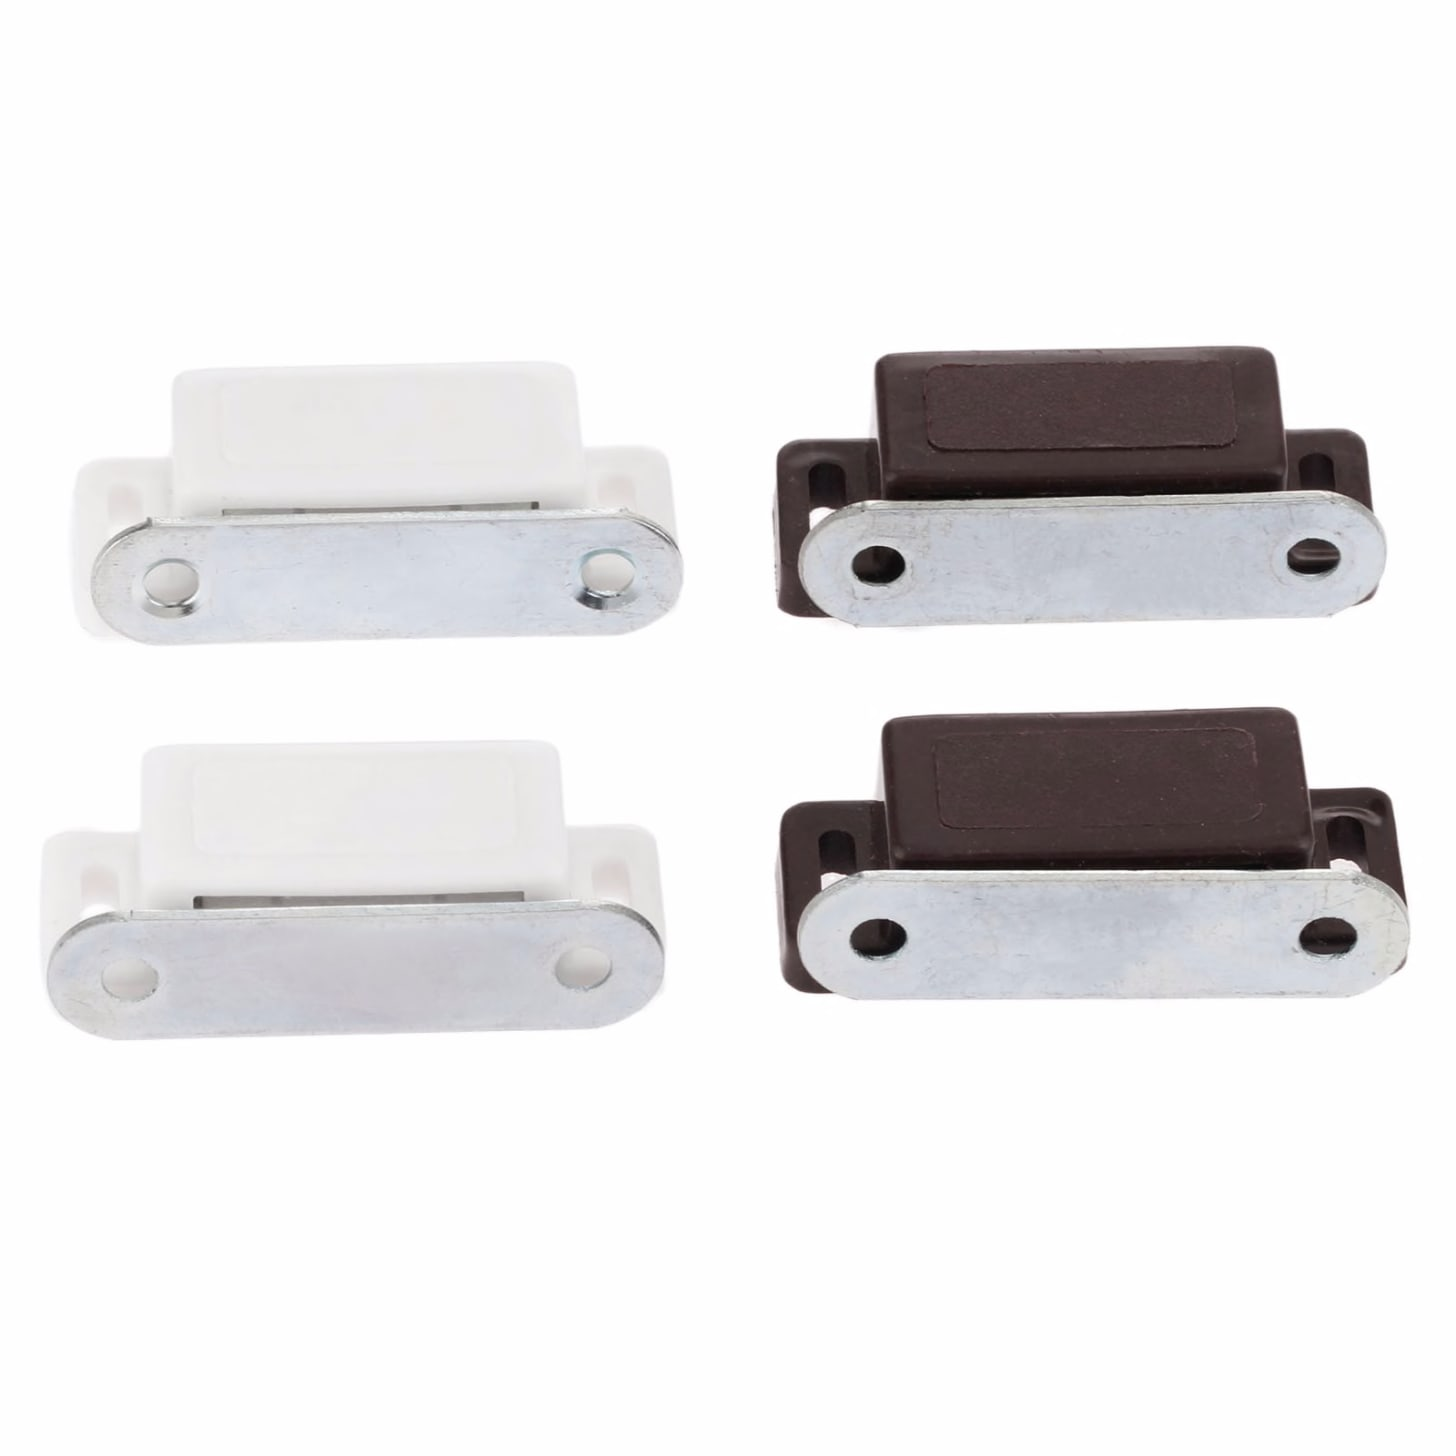 1101699149 2pcs Kitchen Cupboard Wardrobe Magnetic Cabinet Latch Catches 46 16mm Magnetic Door Catches Furniture Hardware With Screws Home Improvement Hardware